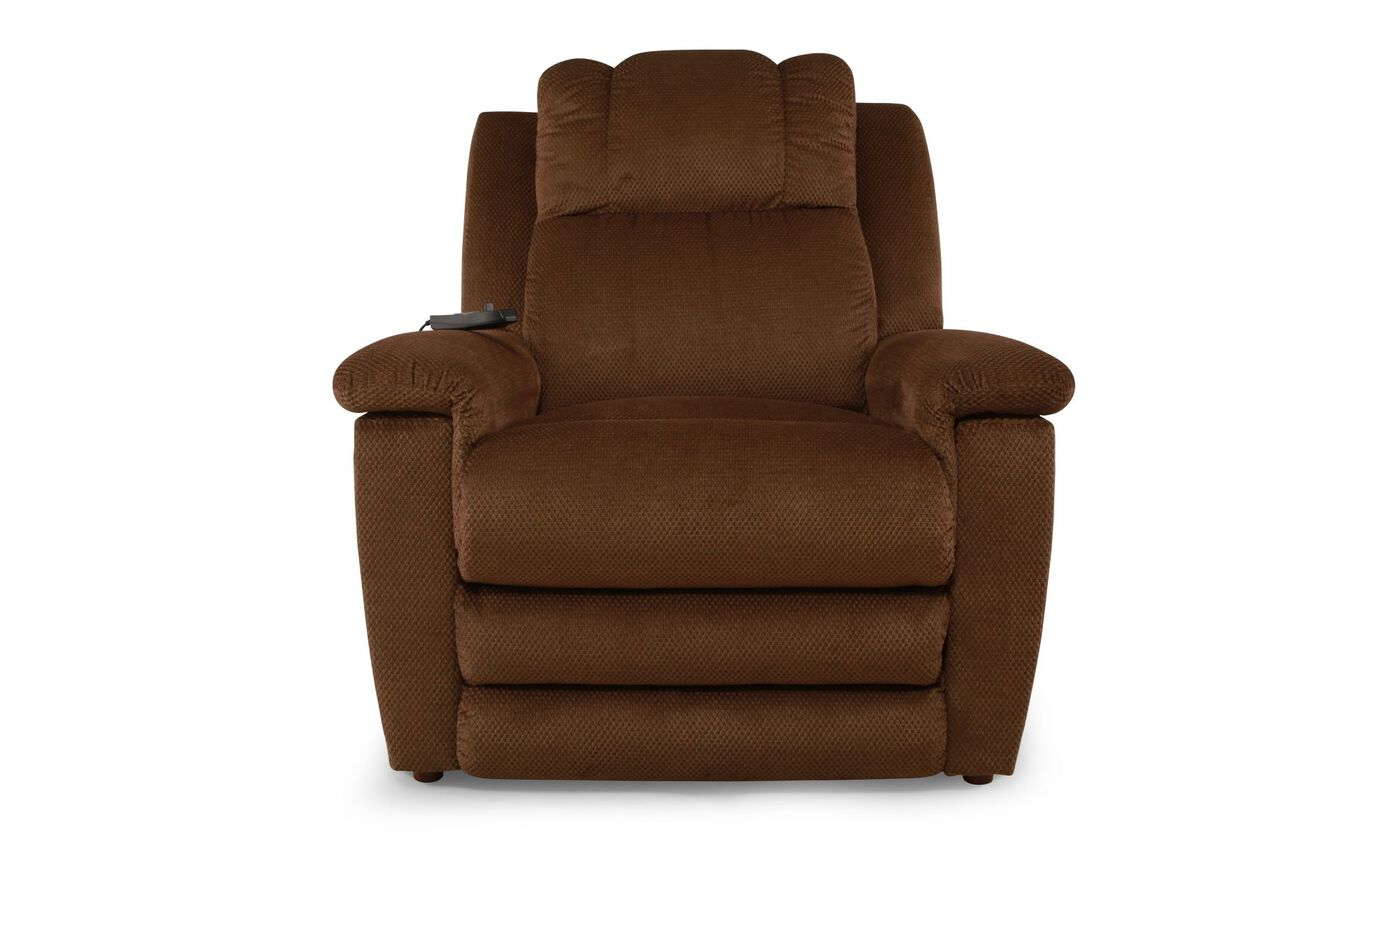 Swivel Recliner Chairs For Living Room Mathis Brothers Living Room Furniture Recliners Best Living Room